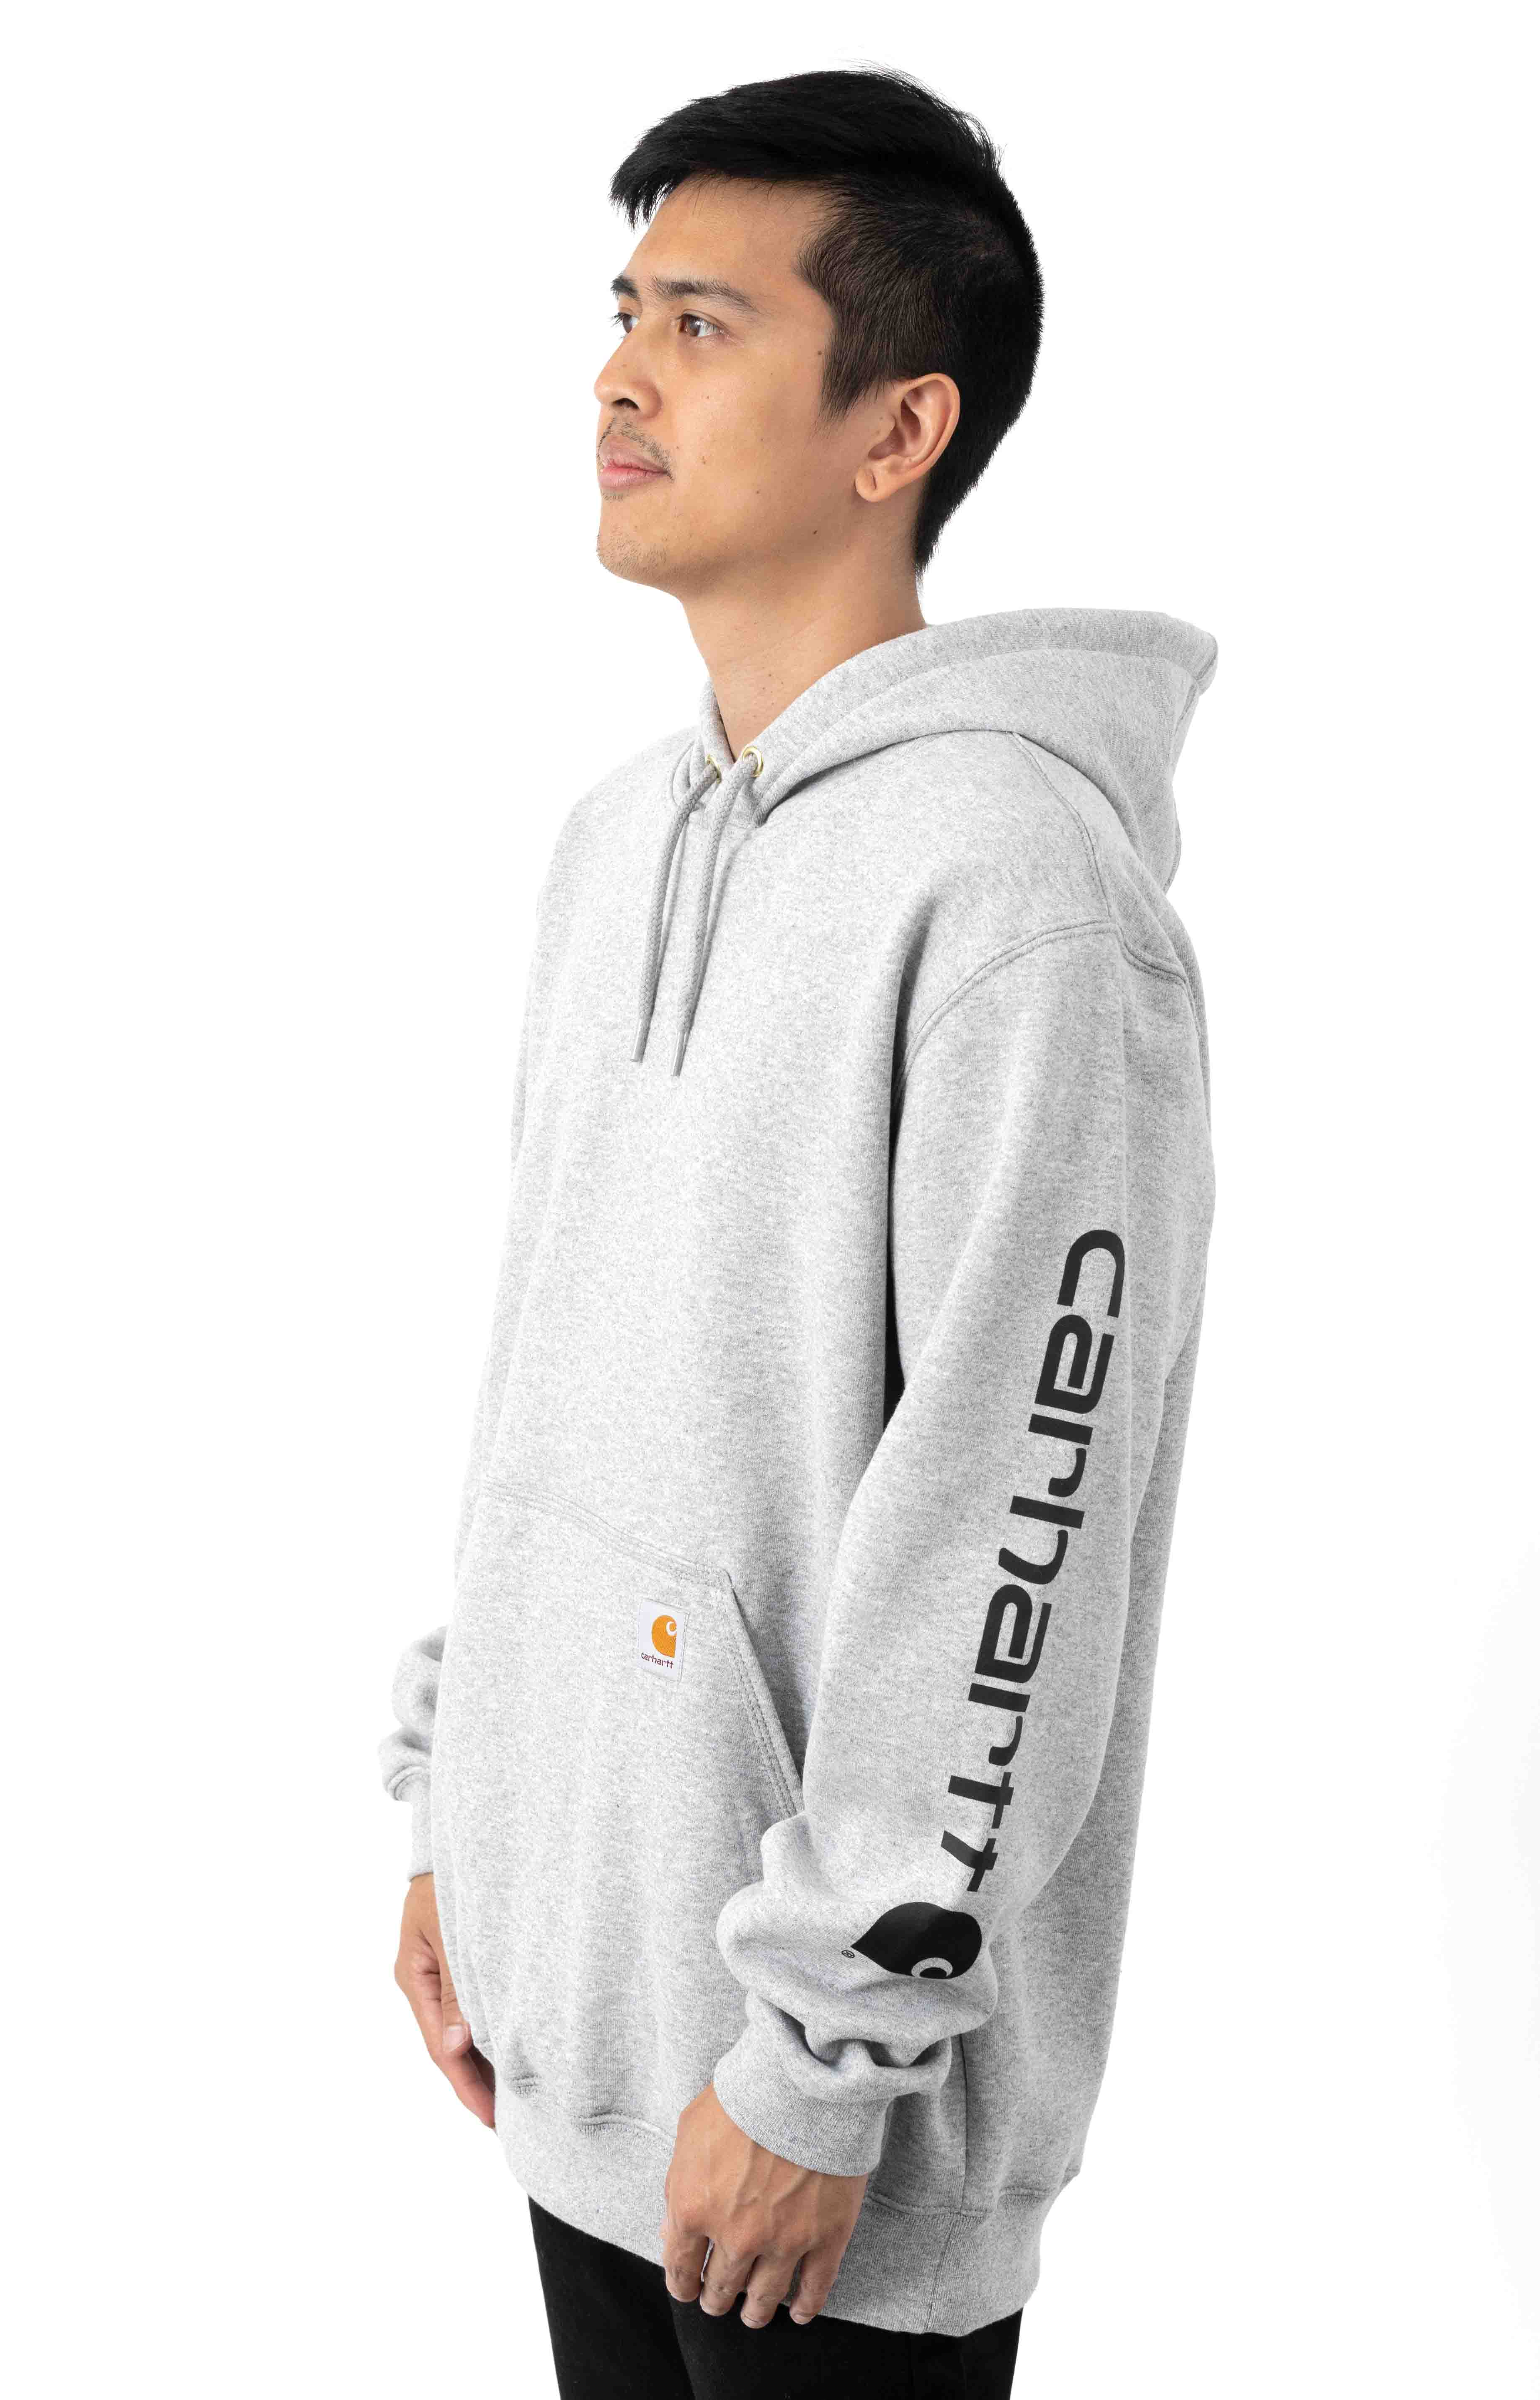 (K288) MW Signature Sleeve Logo Pullover Hoodie - Heather Grey/Black 2